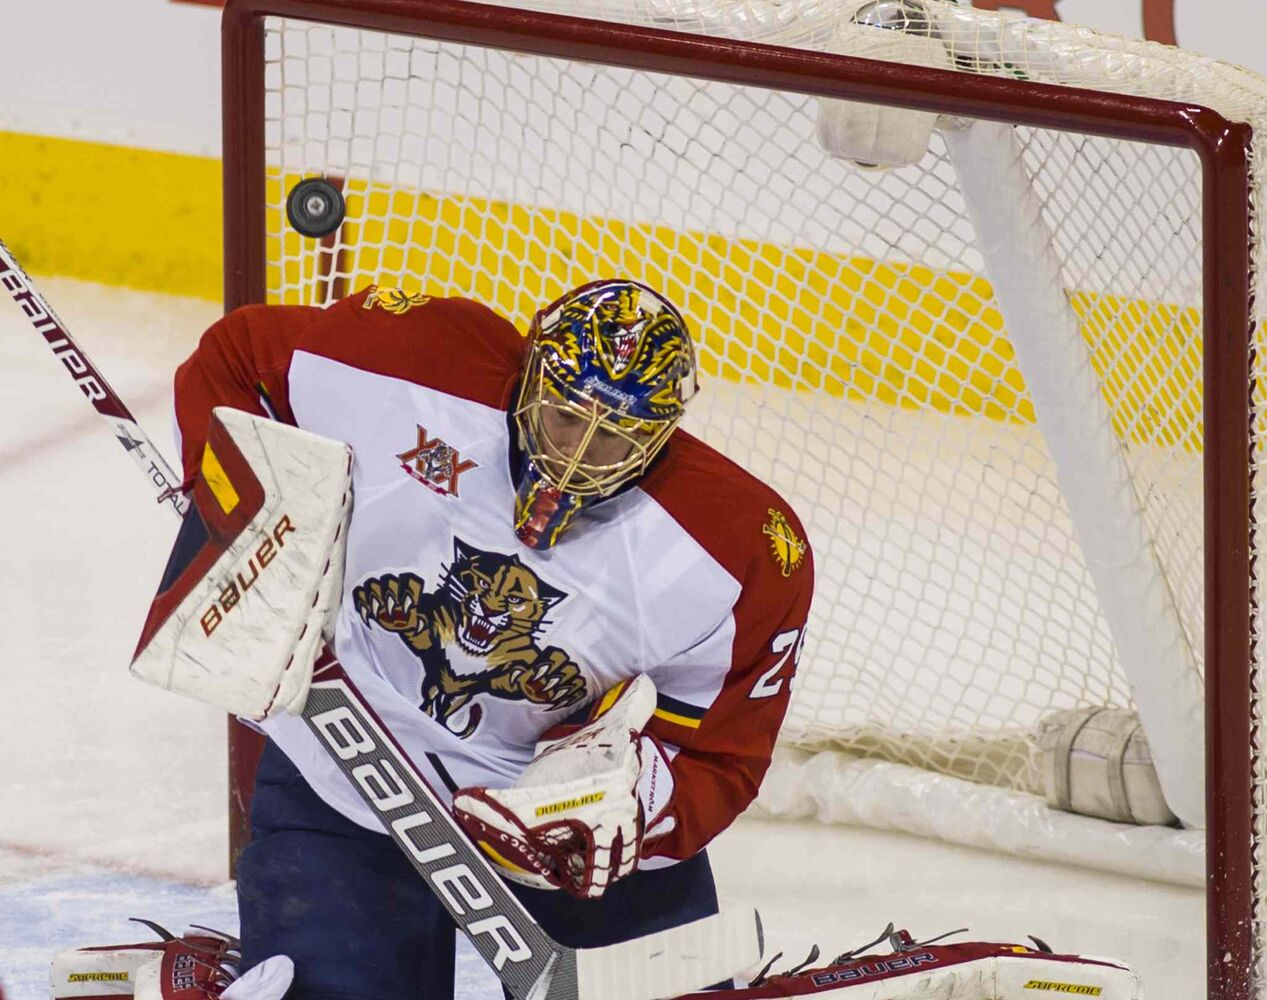 Florida Panthers goal tender Jacob Markstrom (#25) defects the puck during the first period action. (DAVID LIPNOWSKI / WINNIPEG FREE PRESS )